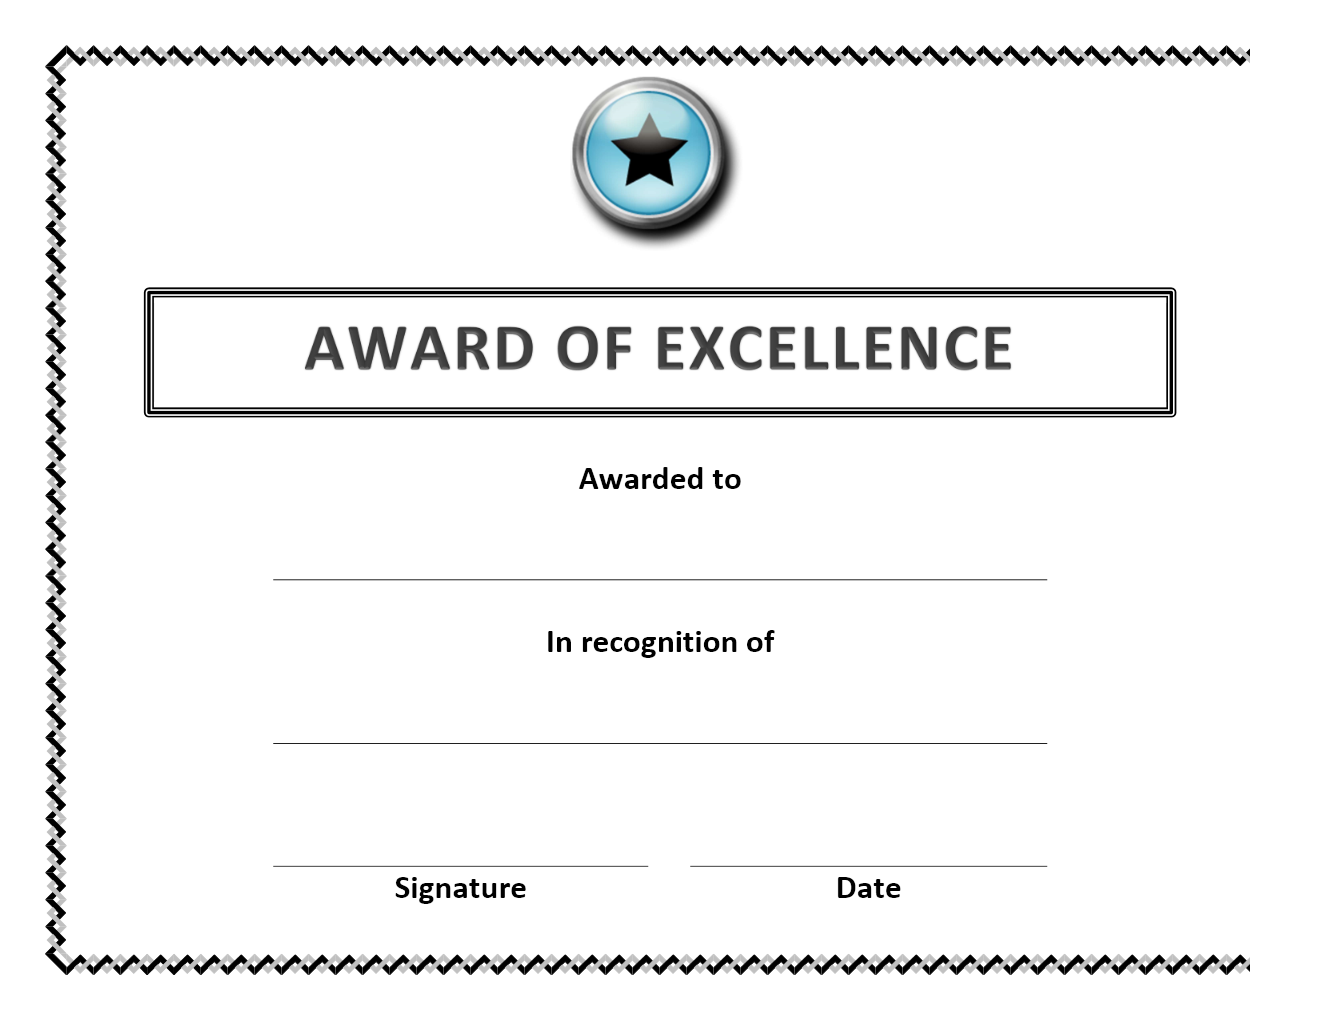 certificate wordtemplates net award of excellence certificate